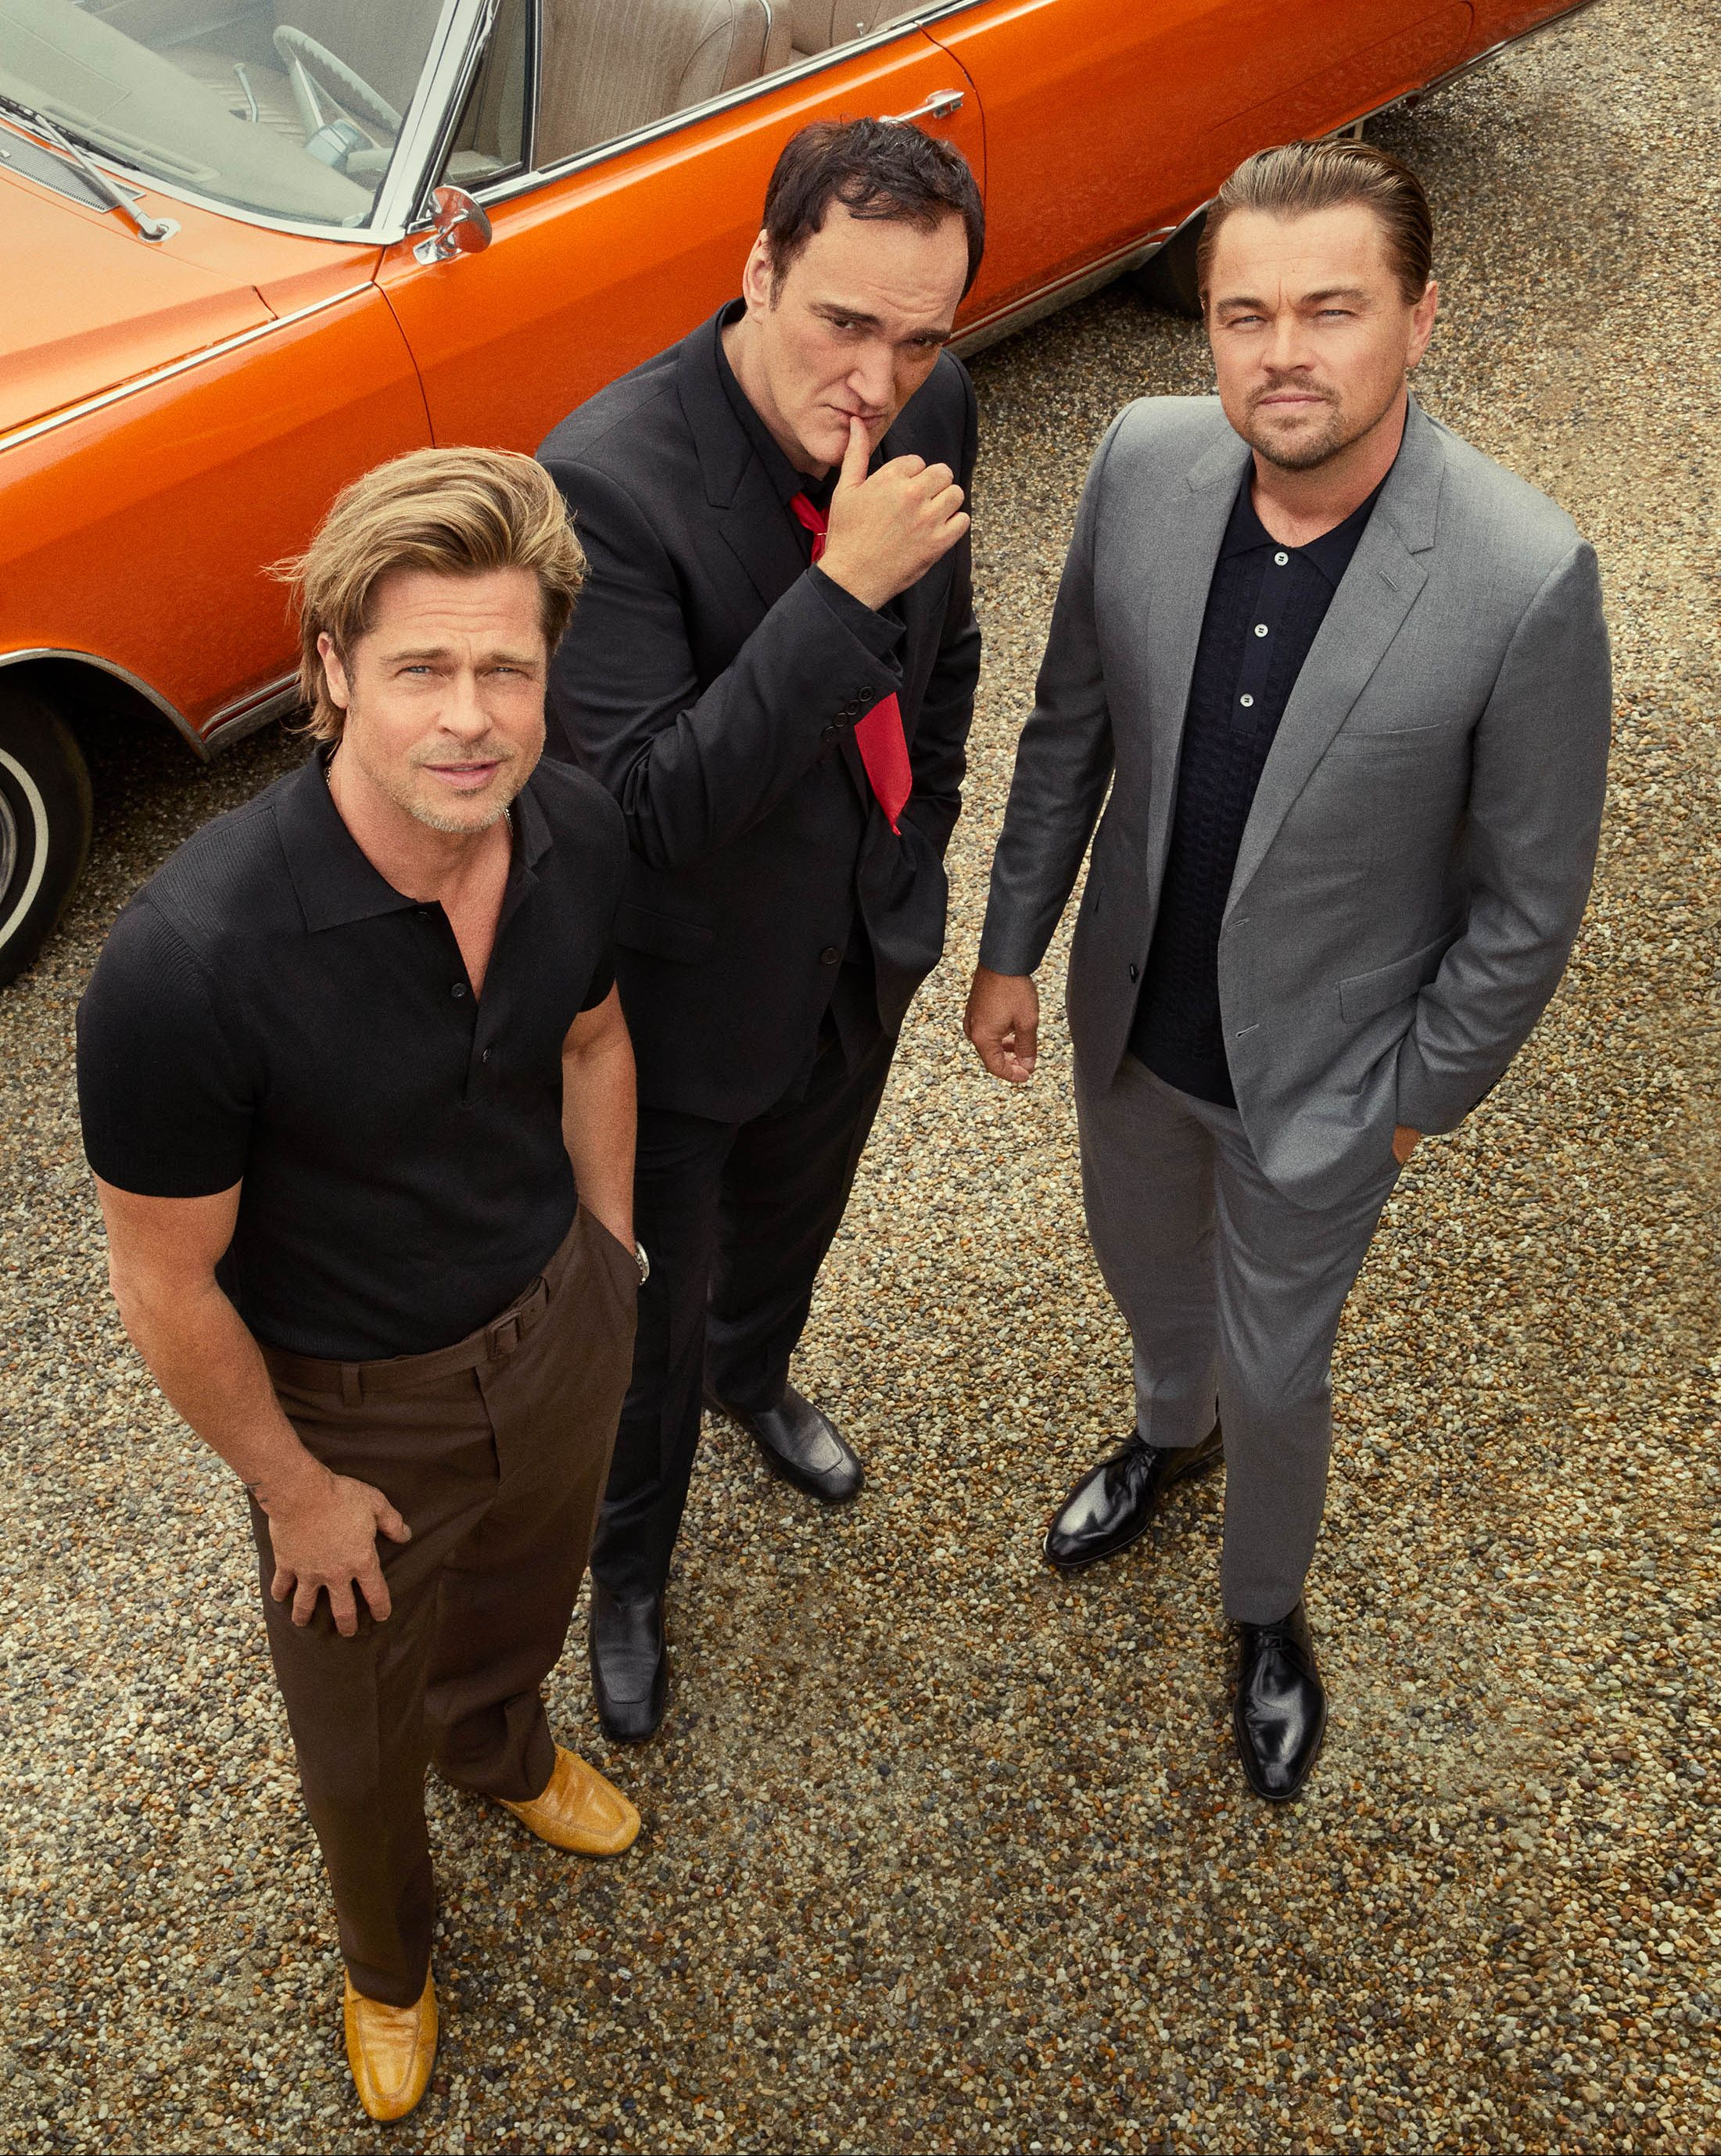 Quentin Tarantino, Brad Pitt, and Leonardo DiCaprio Take You Inside 'Once Upon a Time...In Hollywood'